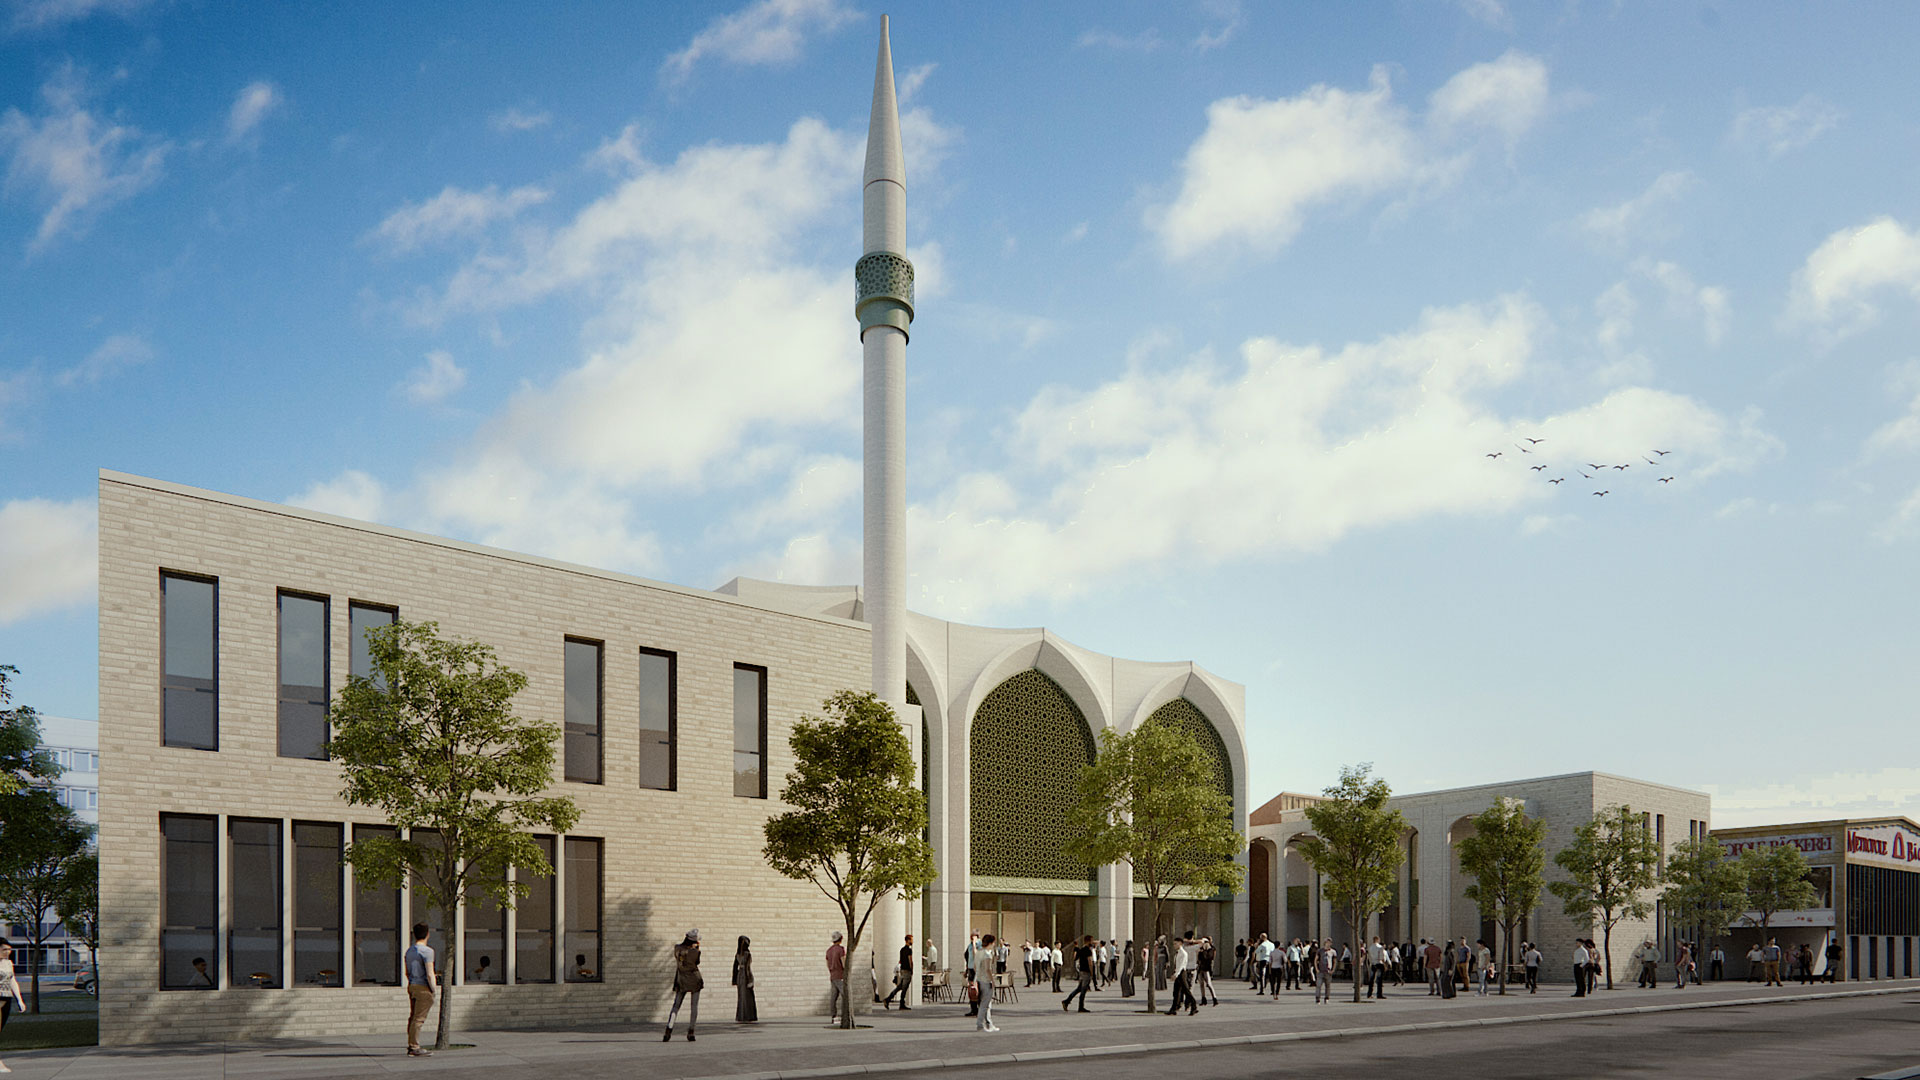 Consistent aesthetic - The mosque and adjacent buildings set themselves apart from their surroundings.